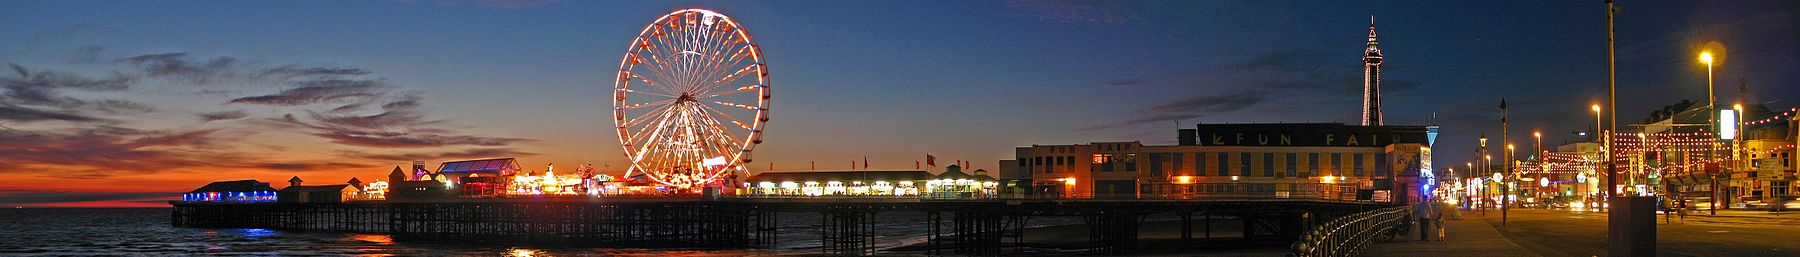 Blackpool banner Night lights.jpg